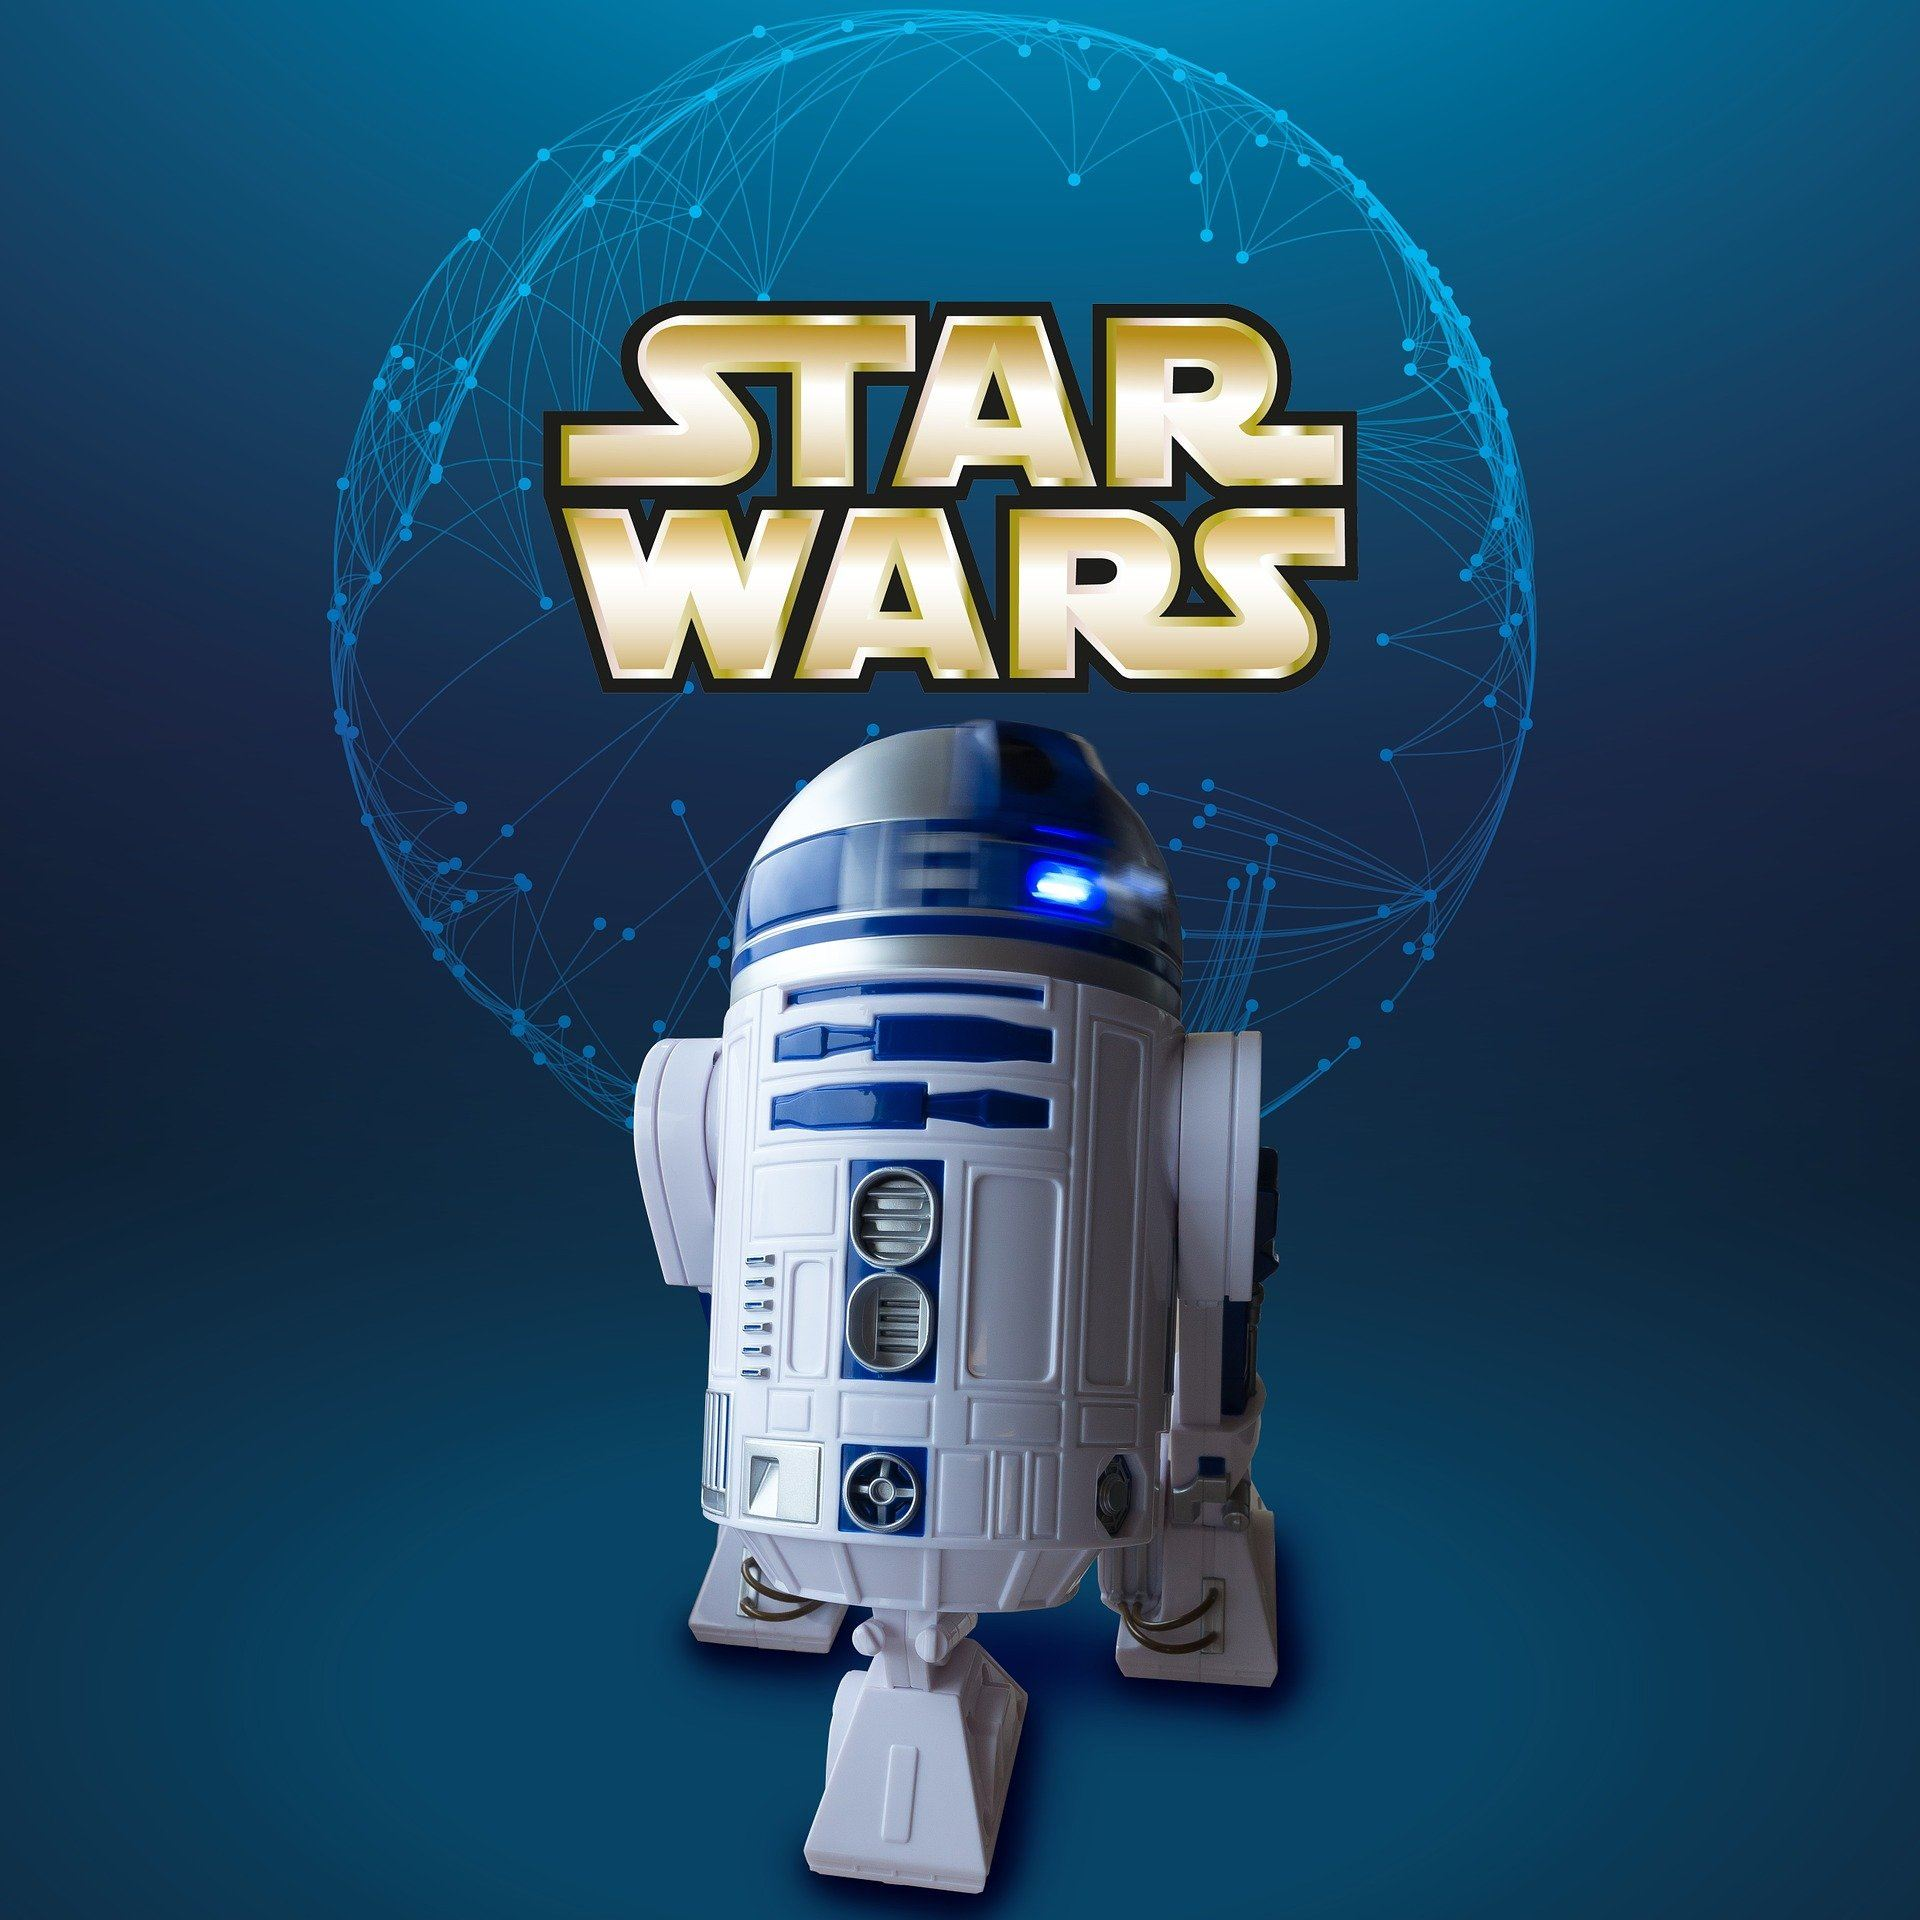 Star Wars, R2D2 in front of planet outline